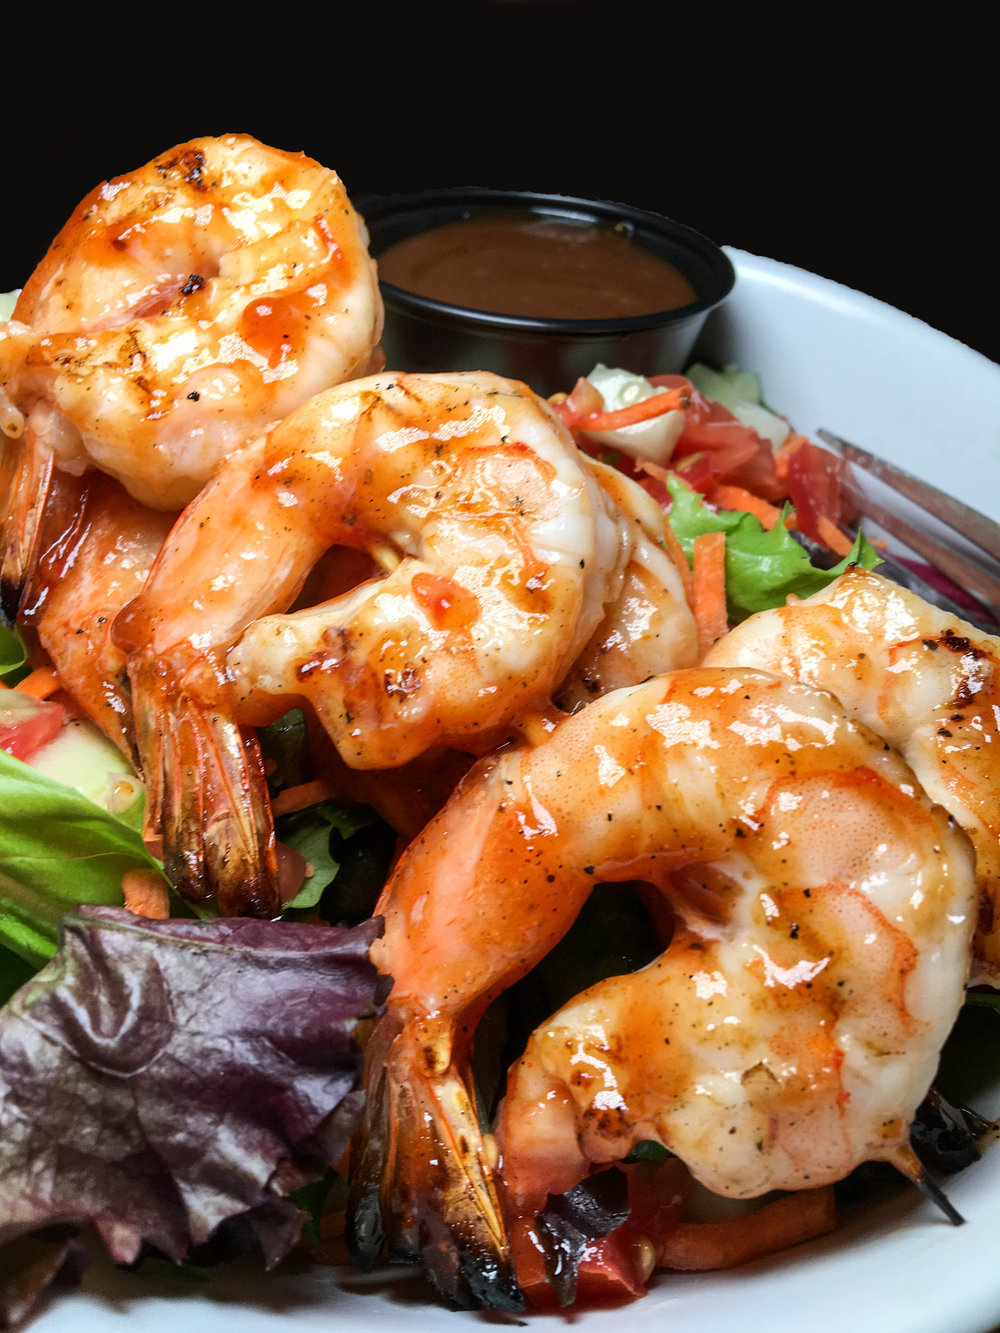 Salad with BBQ shrimp - Bobbique